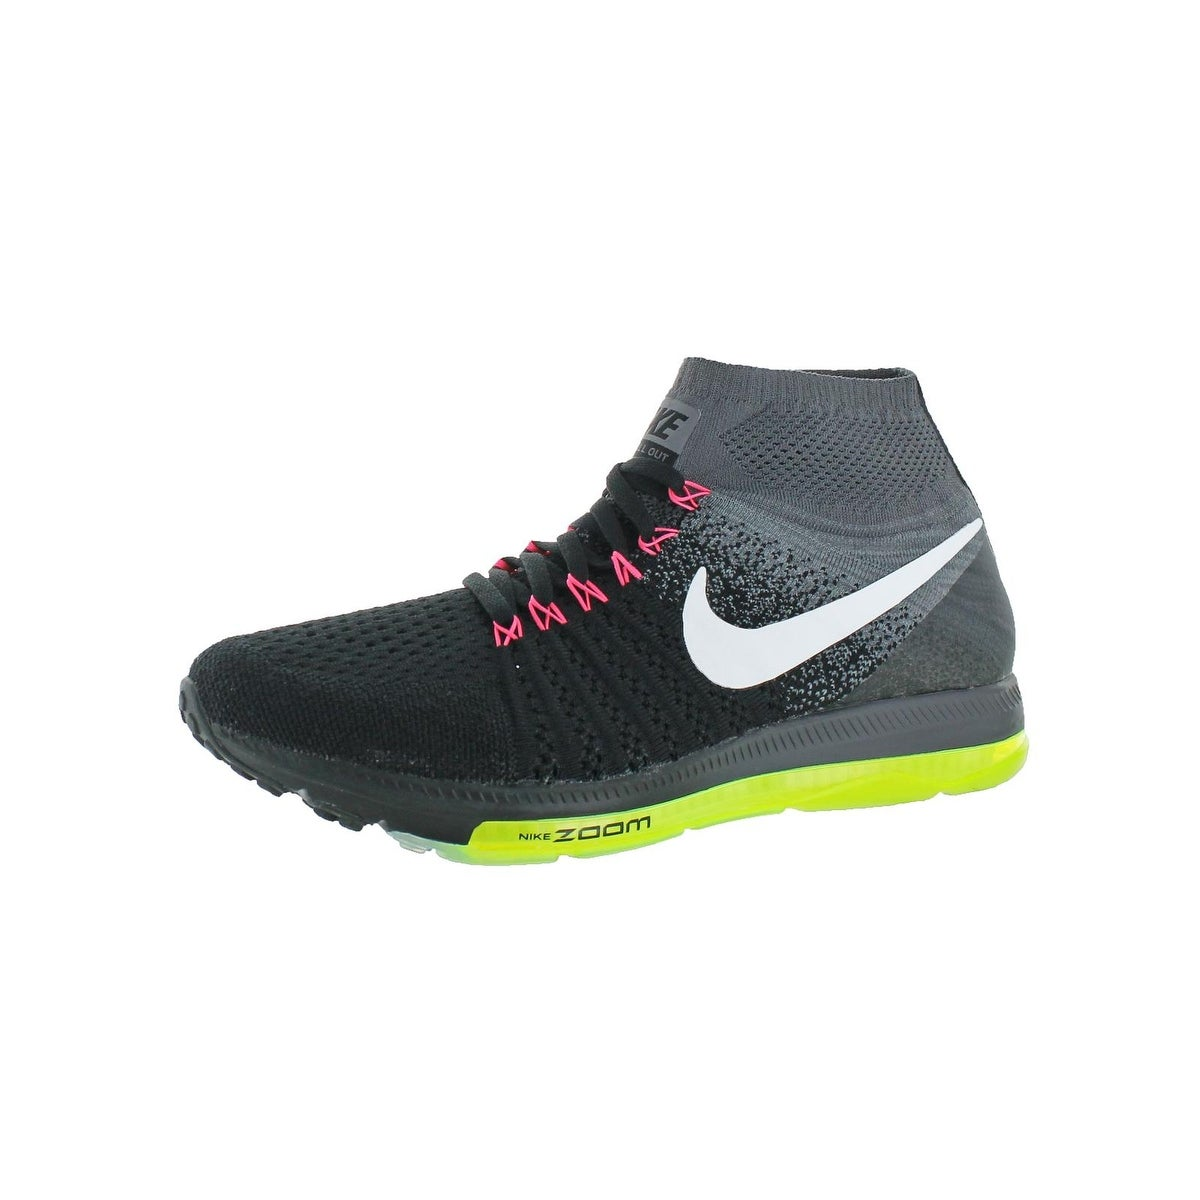 finest selection 4aa6c 3d05b Nike Mens Zoom All Out Flyknit Running Shoes Run Fast Training